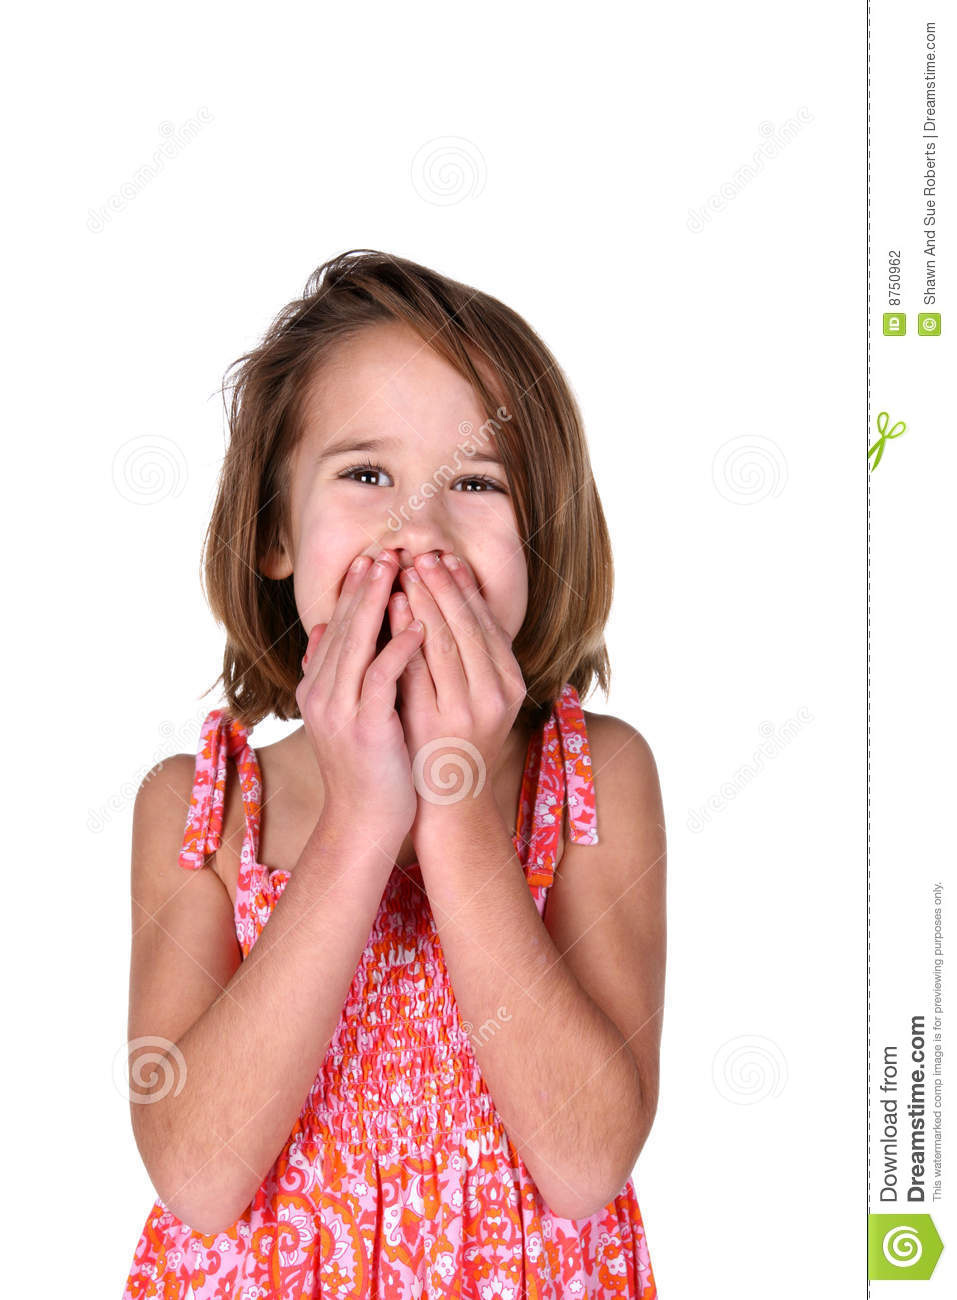 Cute Girl In Bright Dress With Hands Over Mouth Stock Photo - Image ...